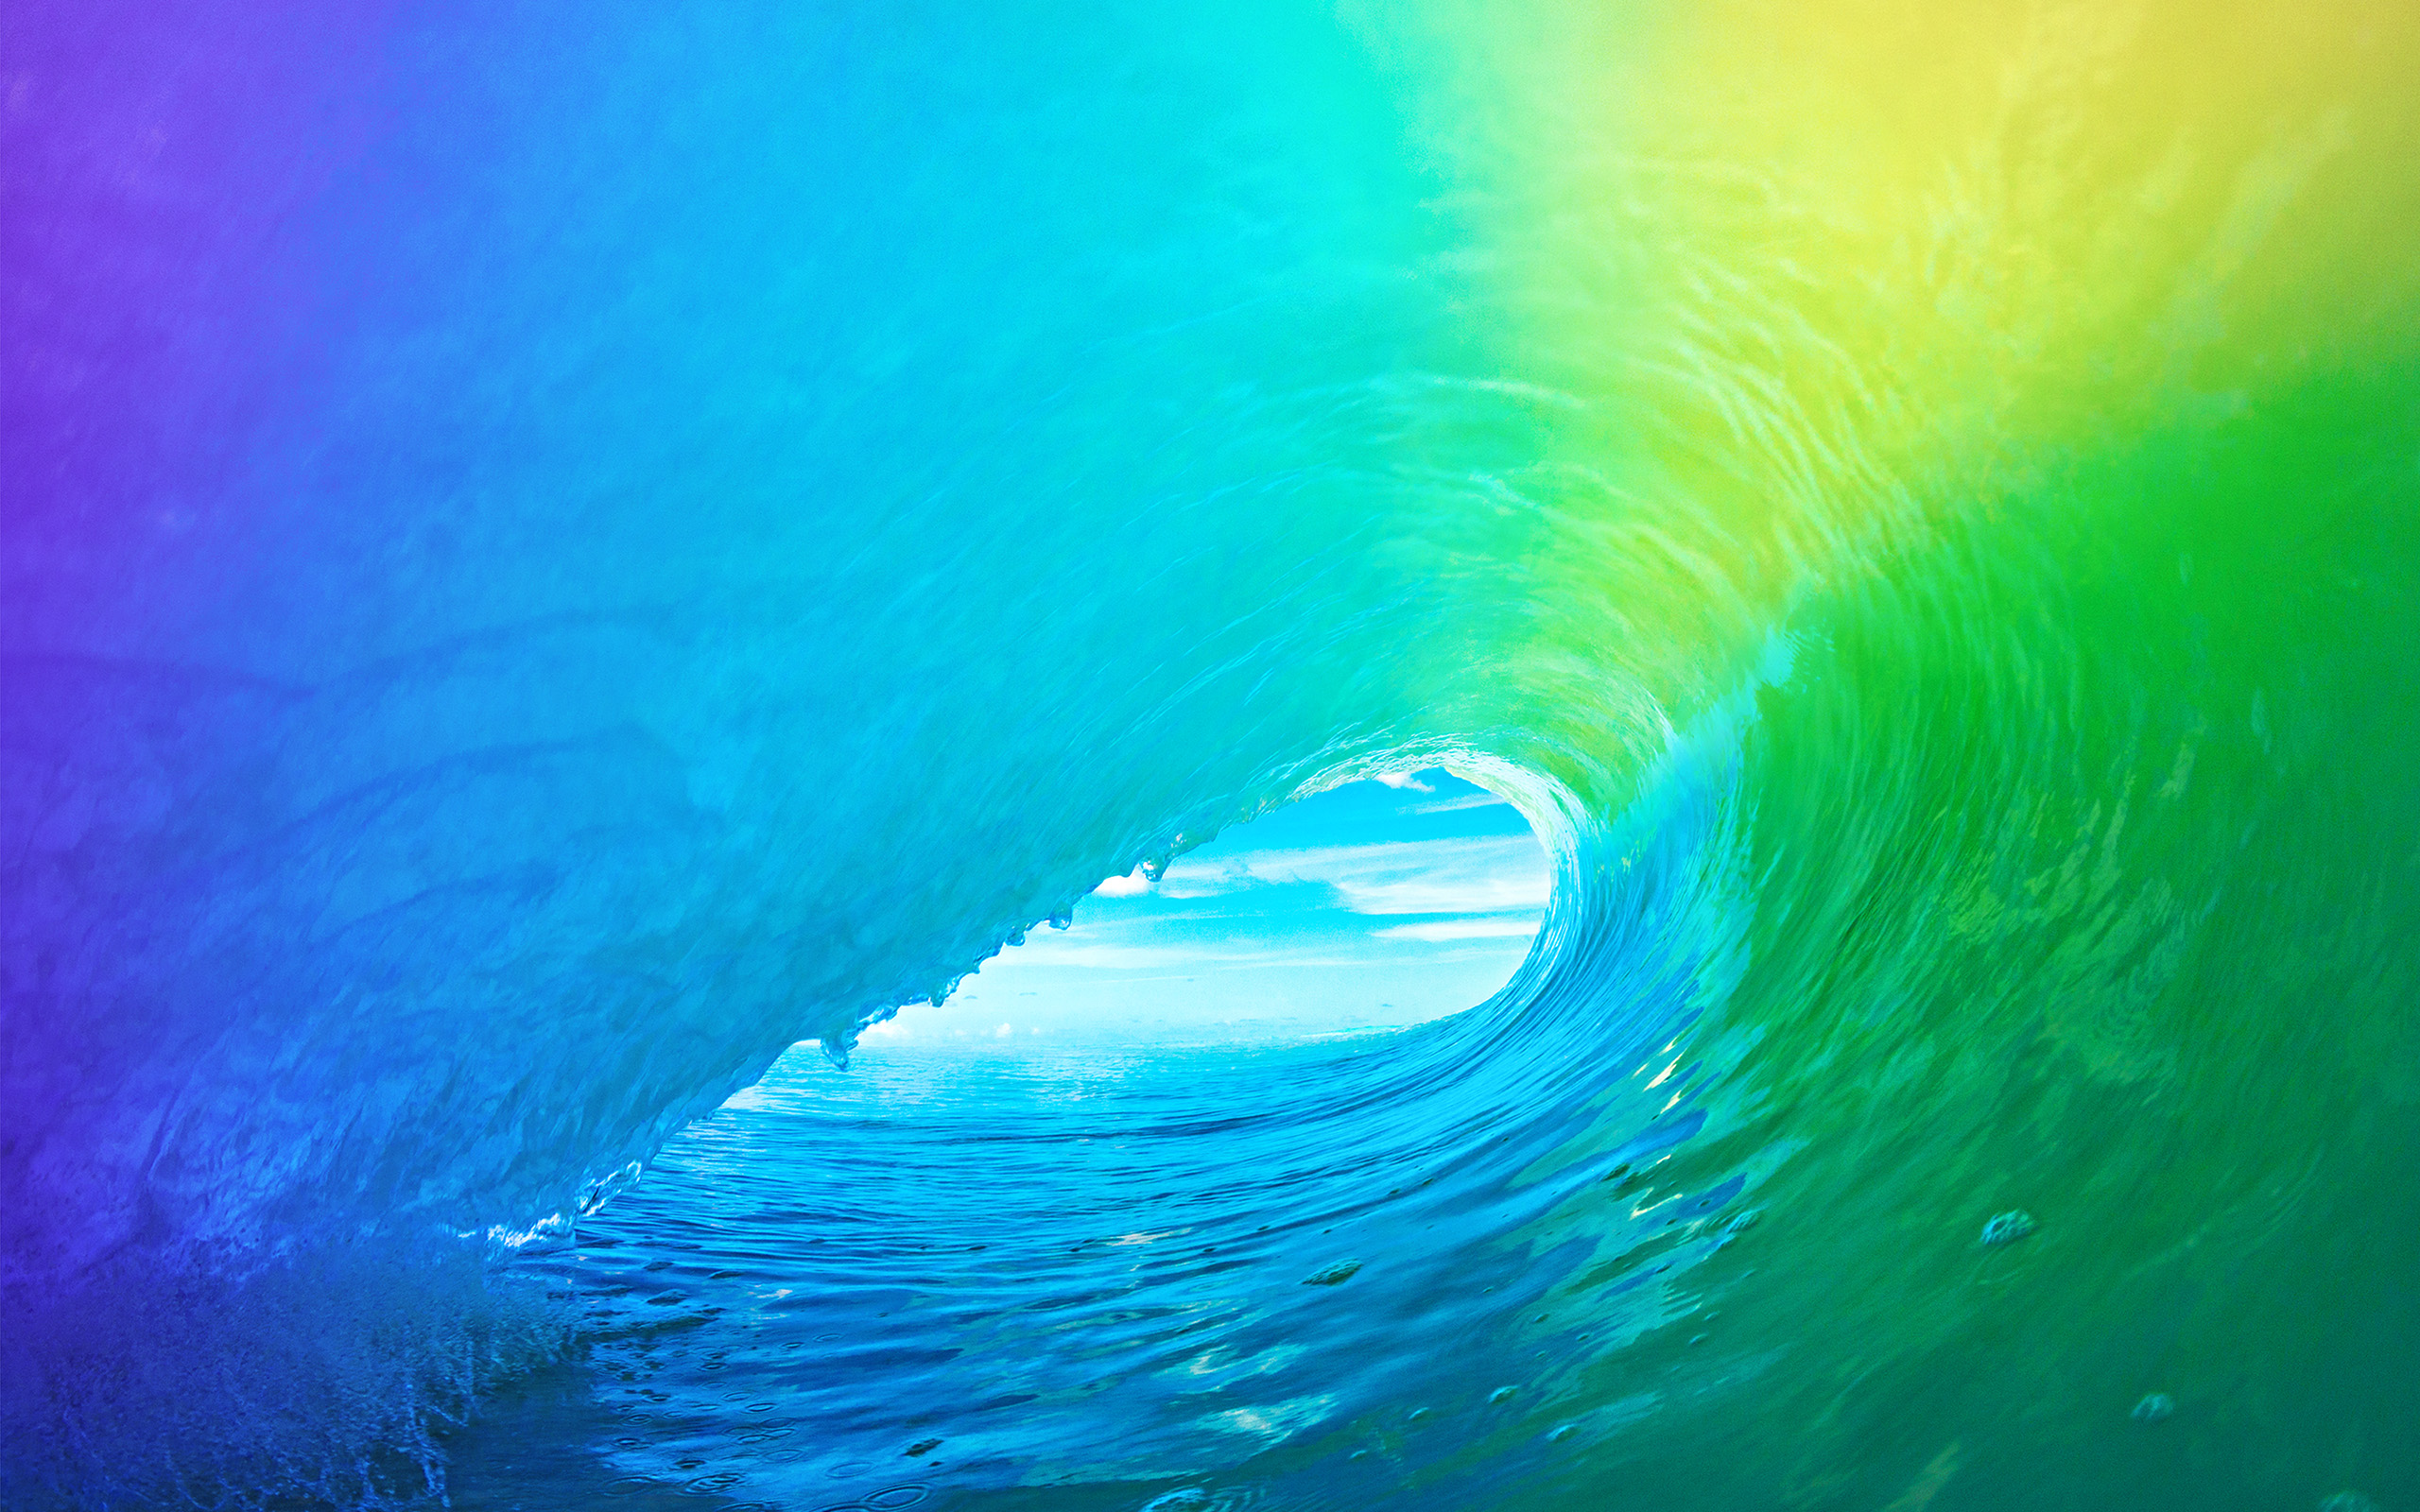 Am81 Ios9 Apple Wave Rainbow Sea Ocean Papers Co